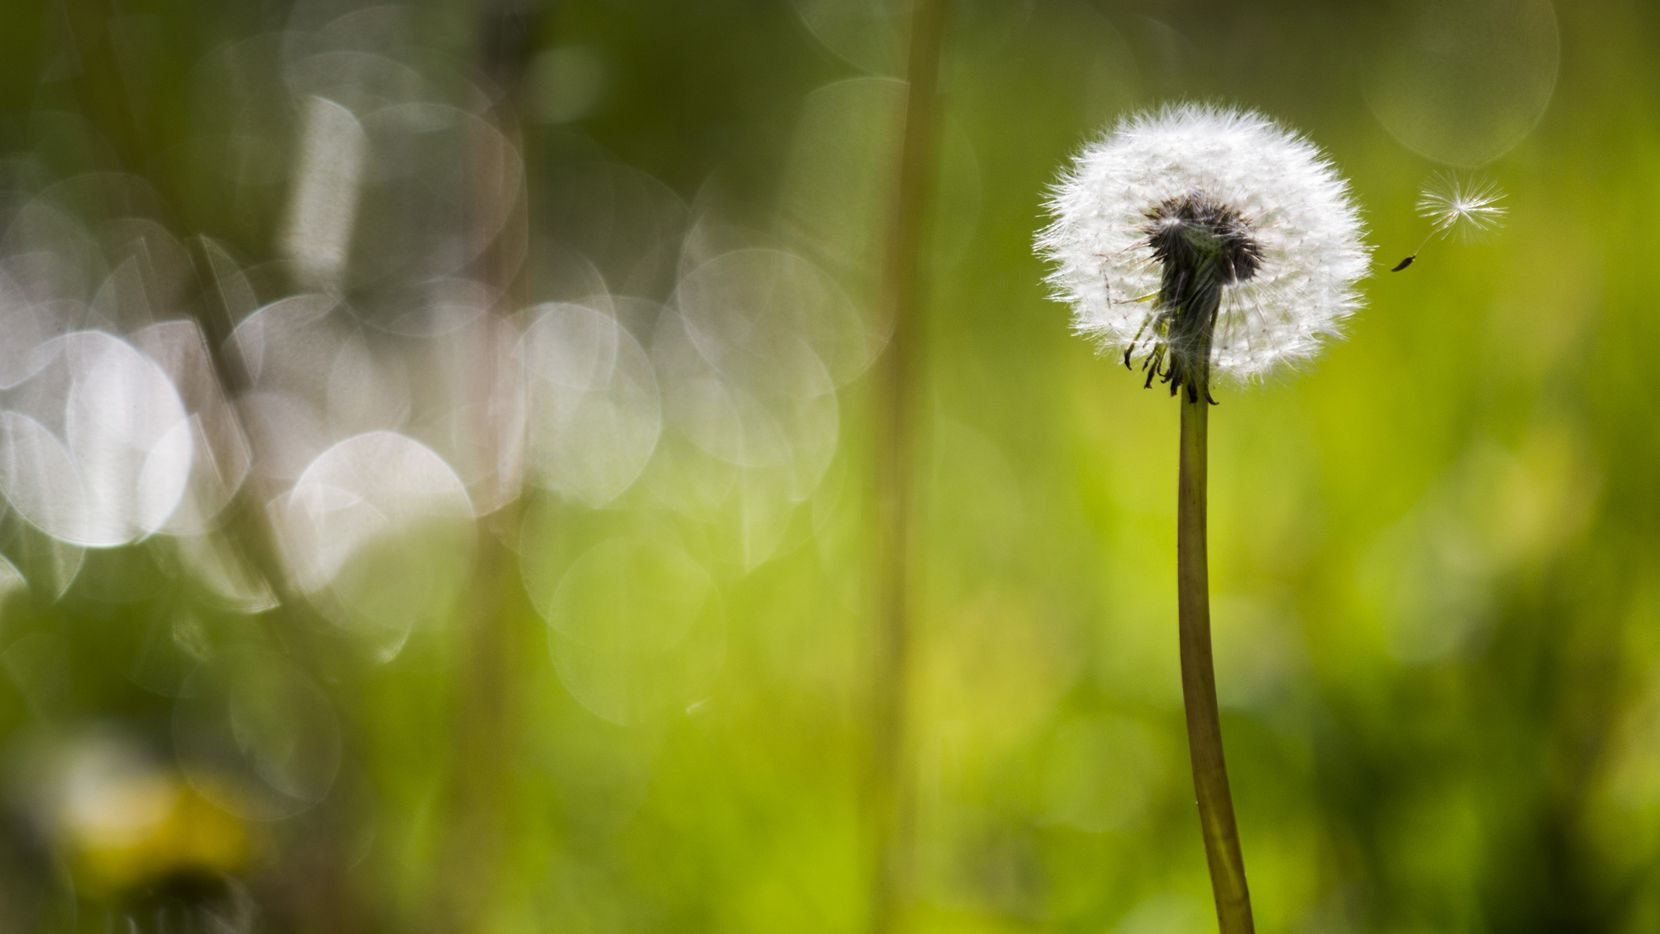 A dandelion seed alights on the wind on Sunday, March 18, 2018 at Reverchon Park in Dallas.